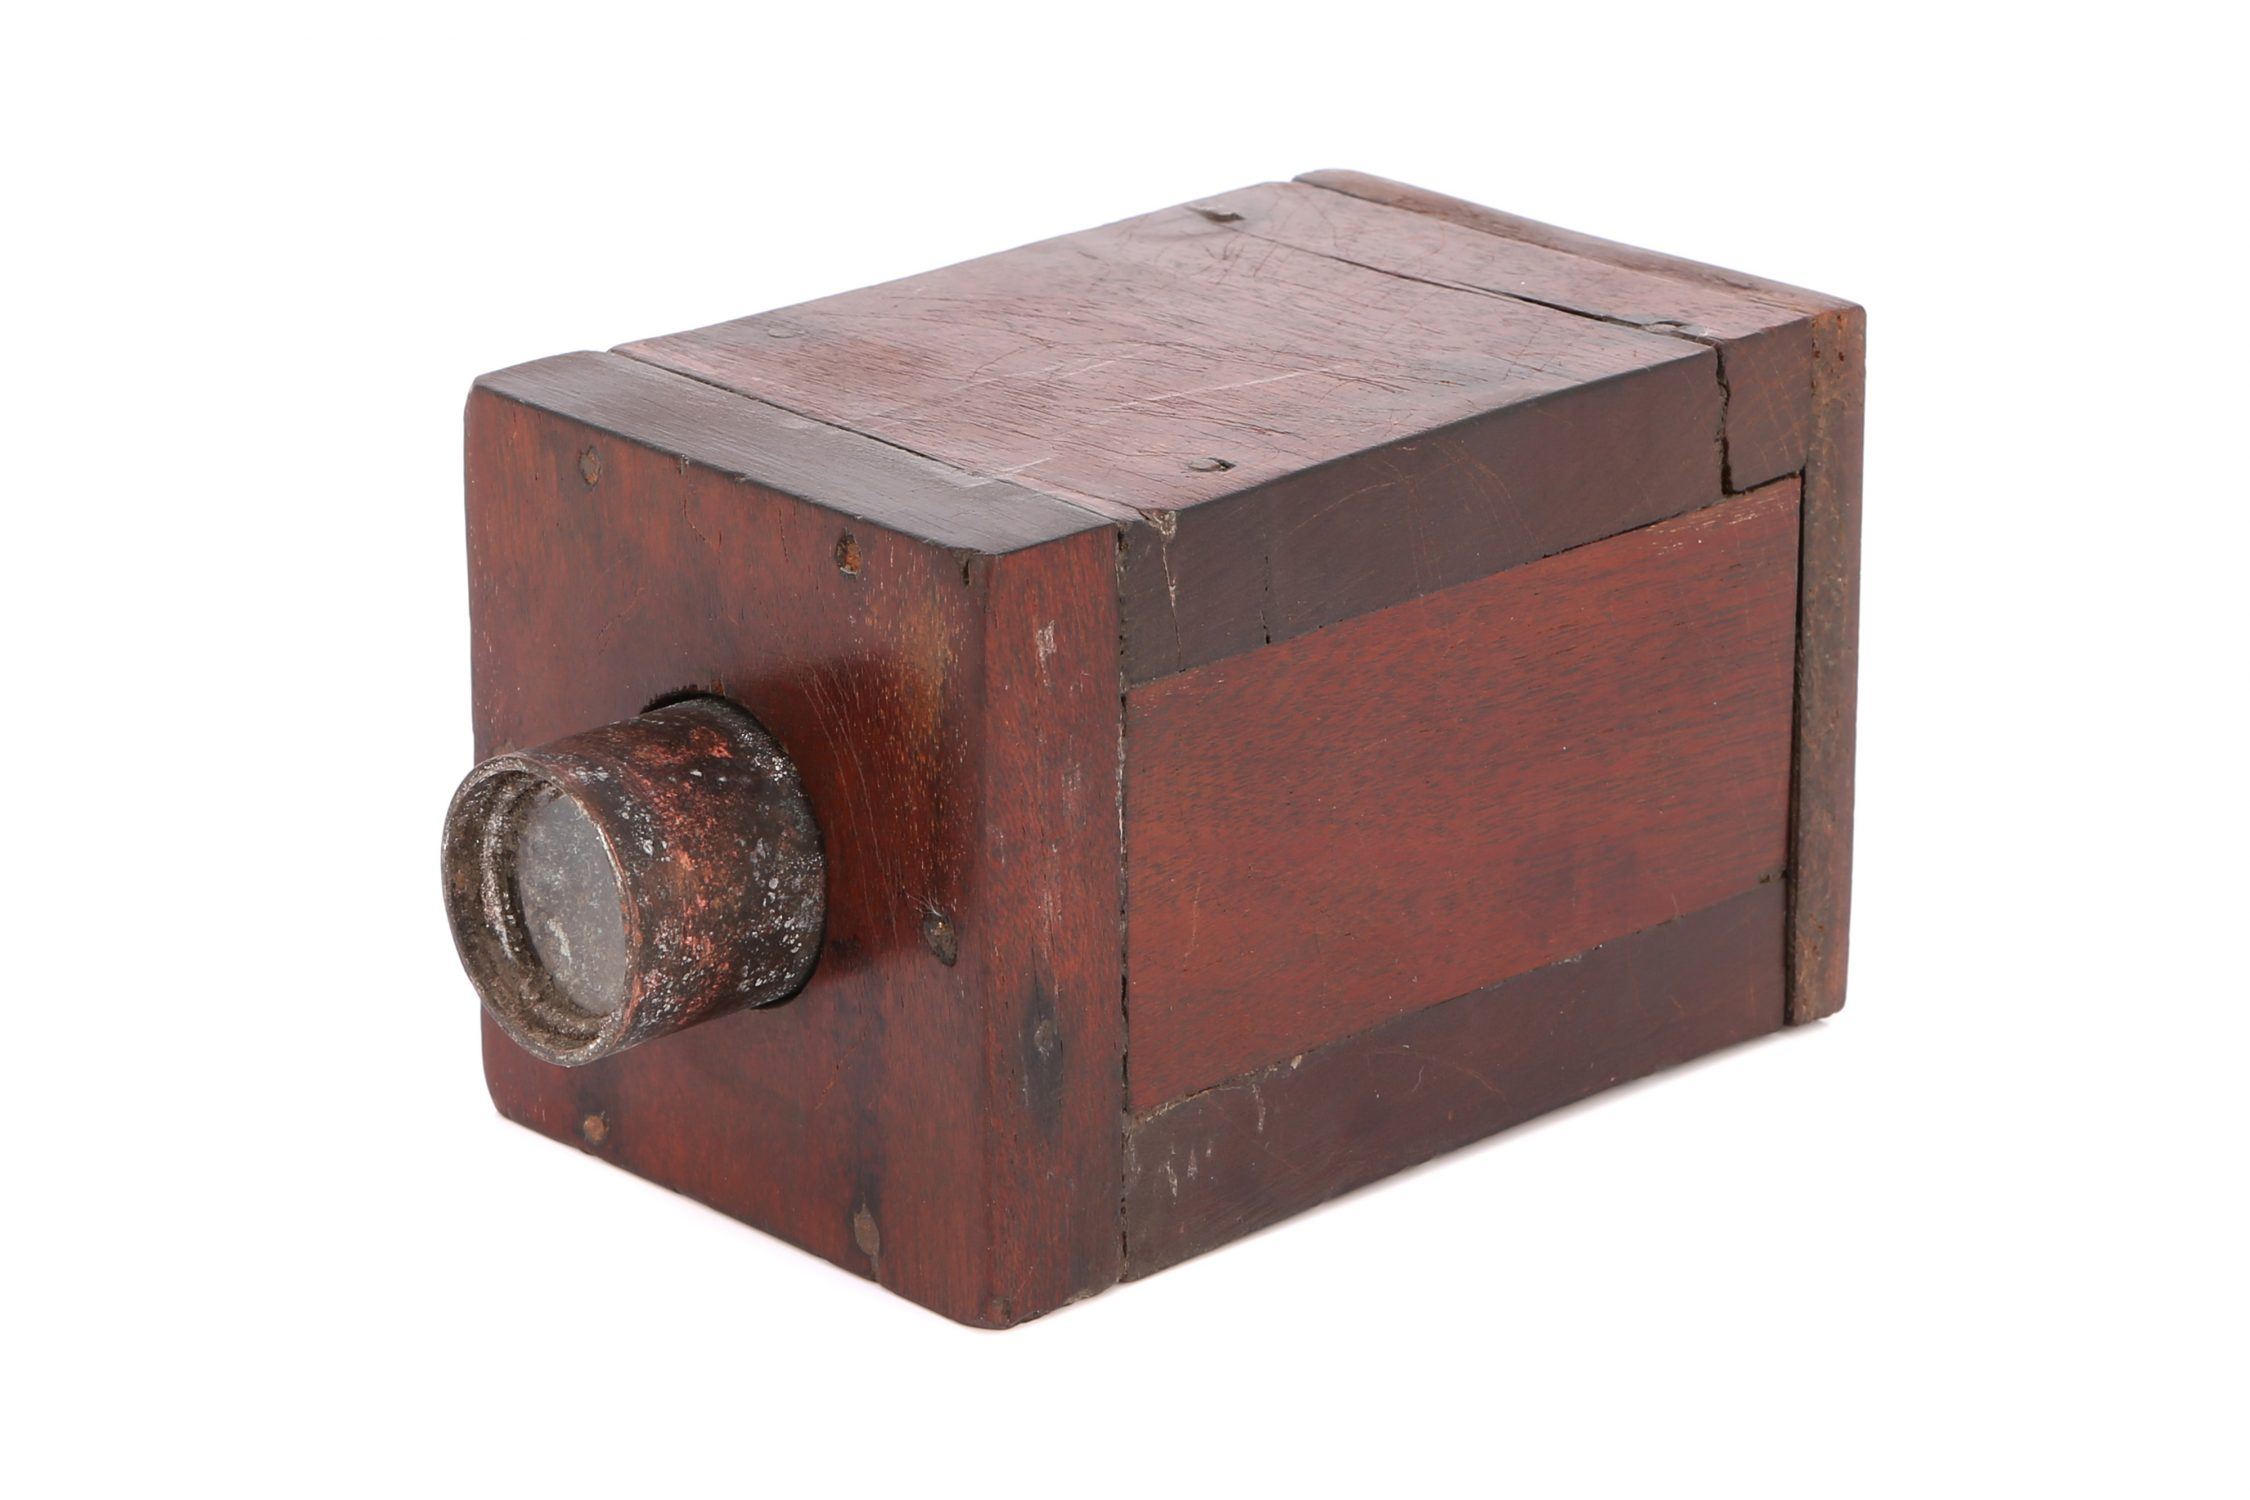 Experimental 'mousetrap' camera (Pic: Flint's Auctions)